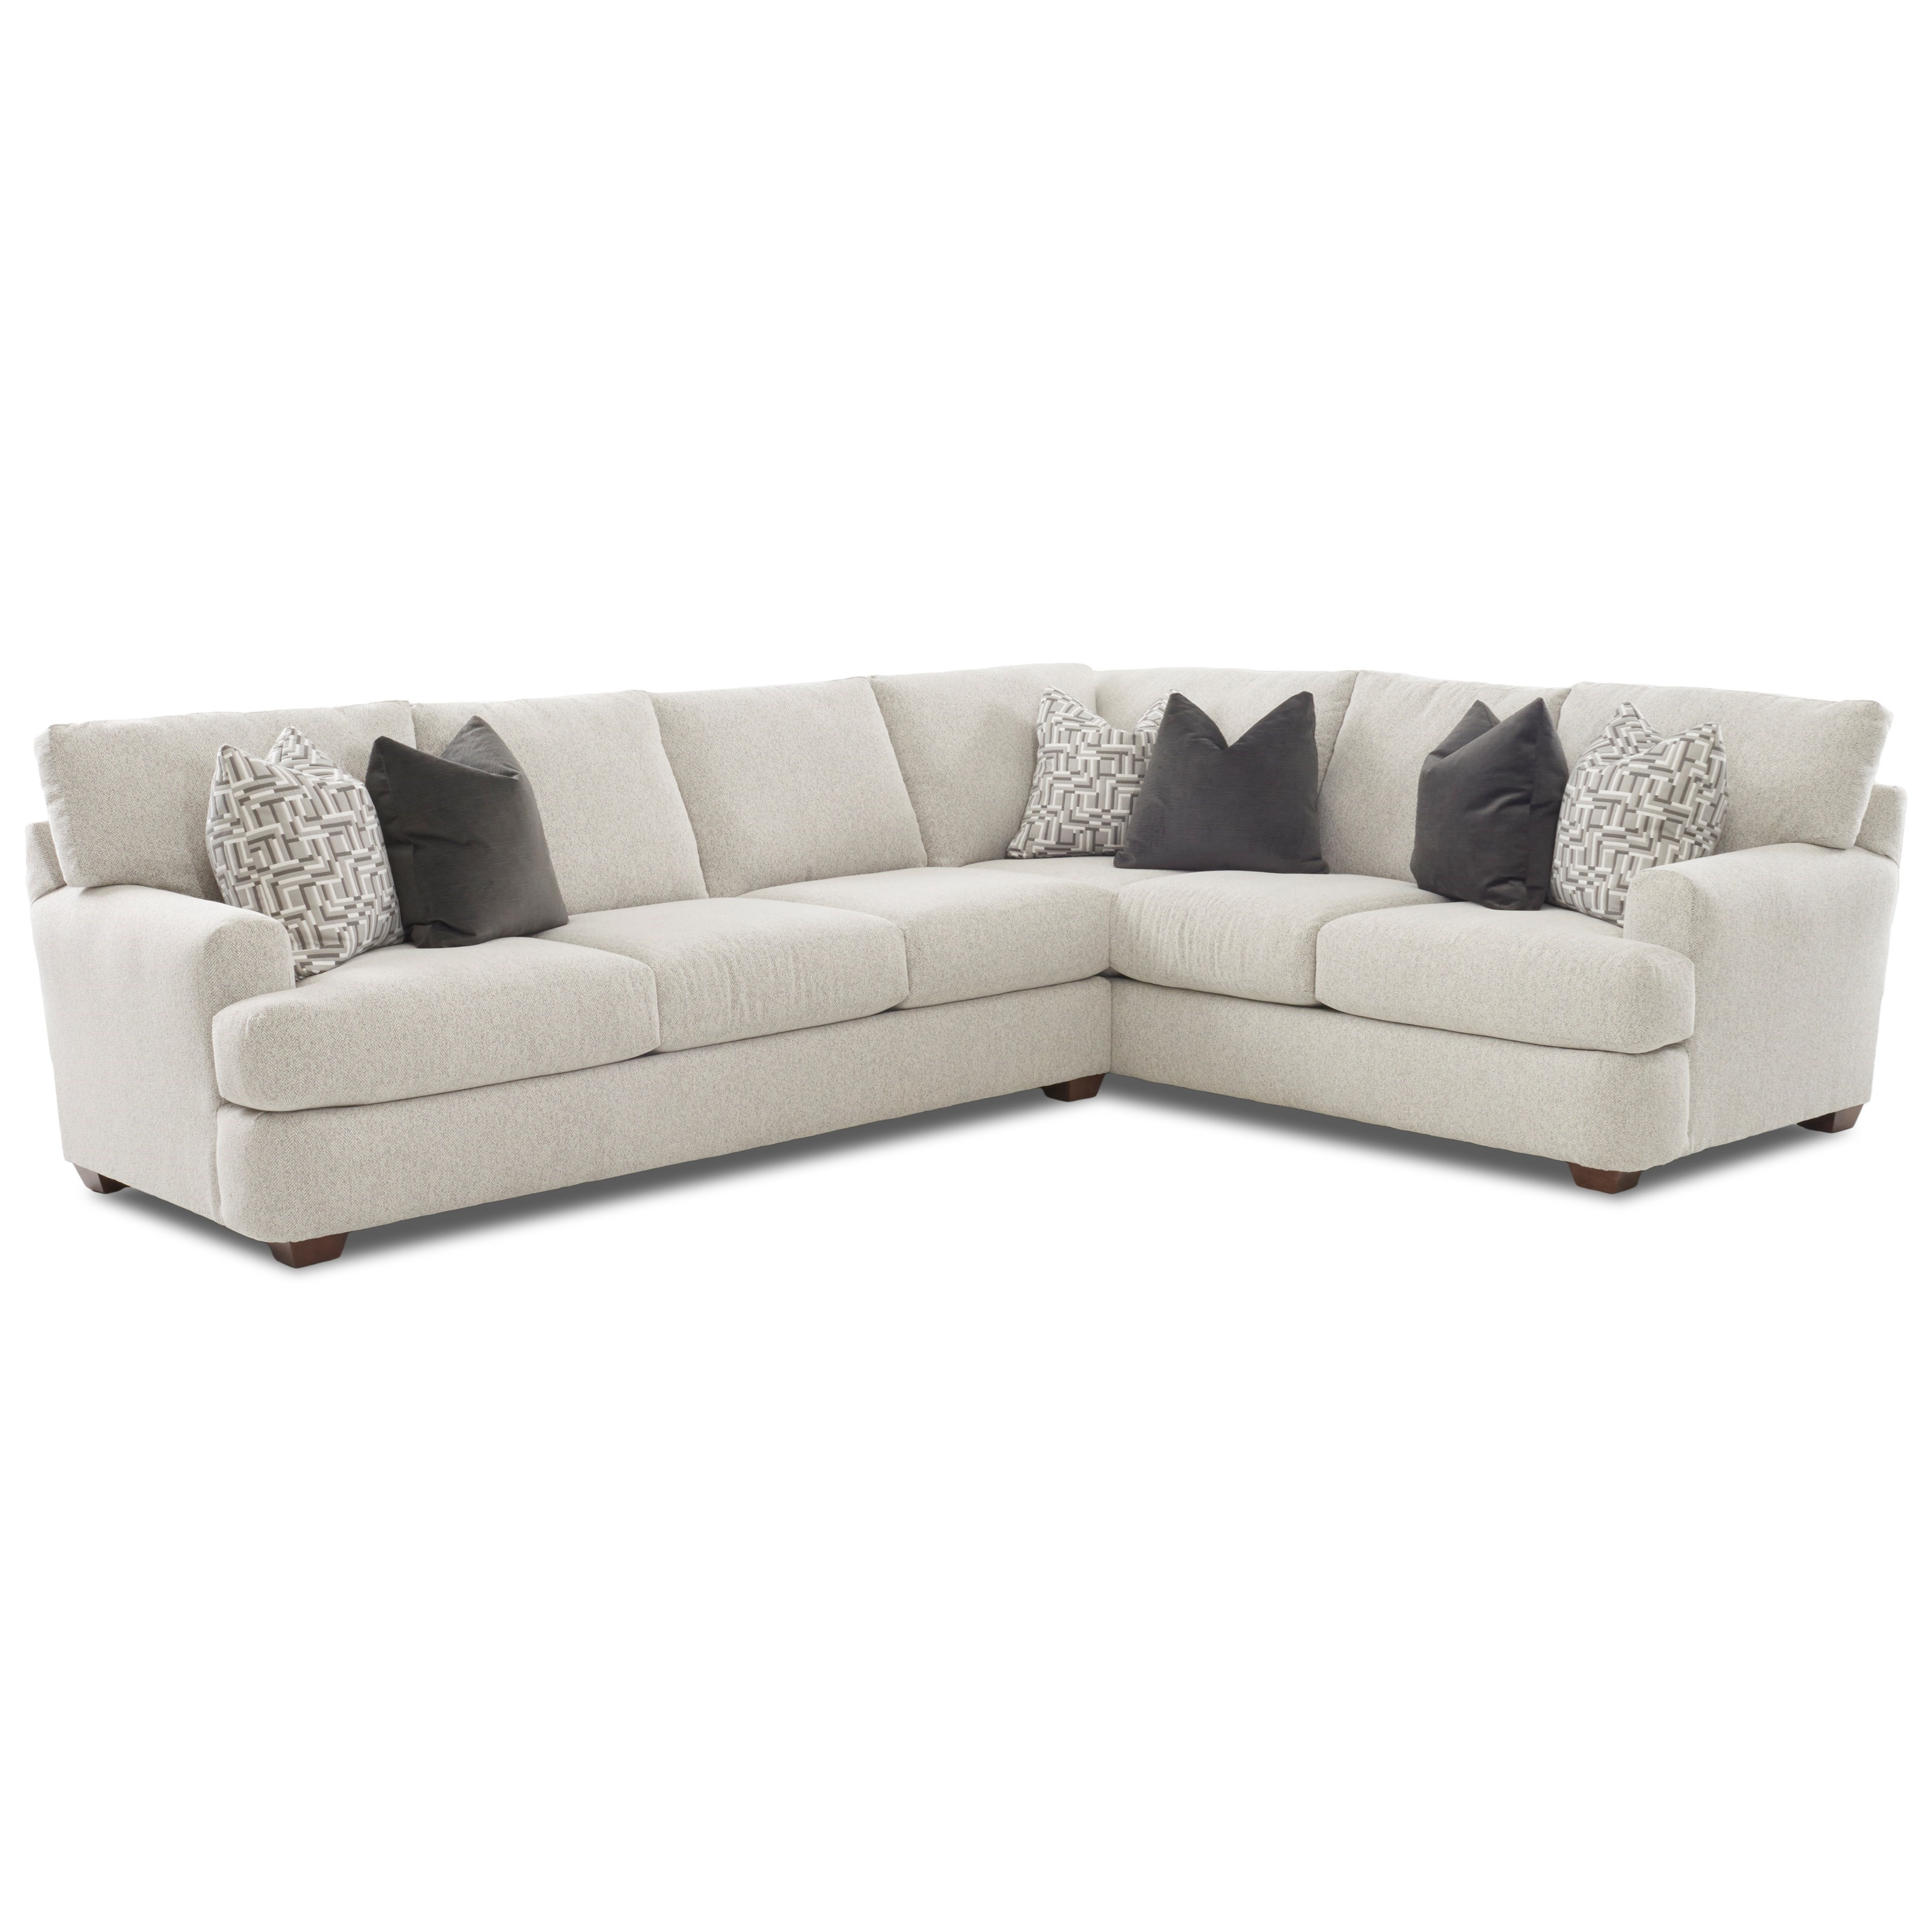 Two Piece Sectional Sofa with RAF Corner Sofa by Klaussner | Wolf ...